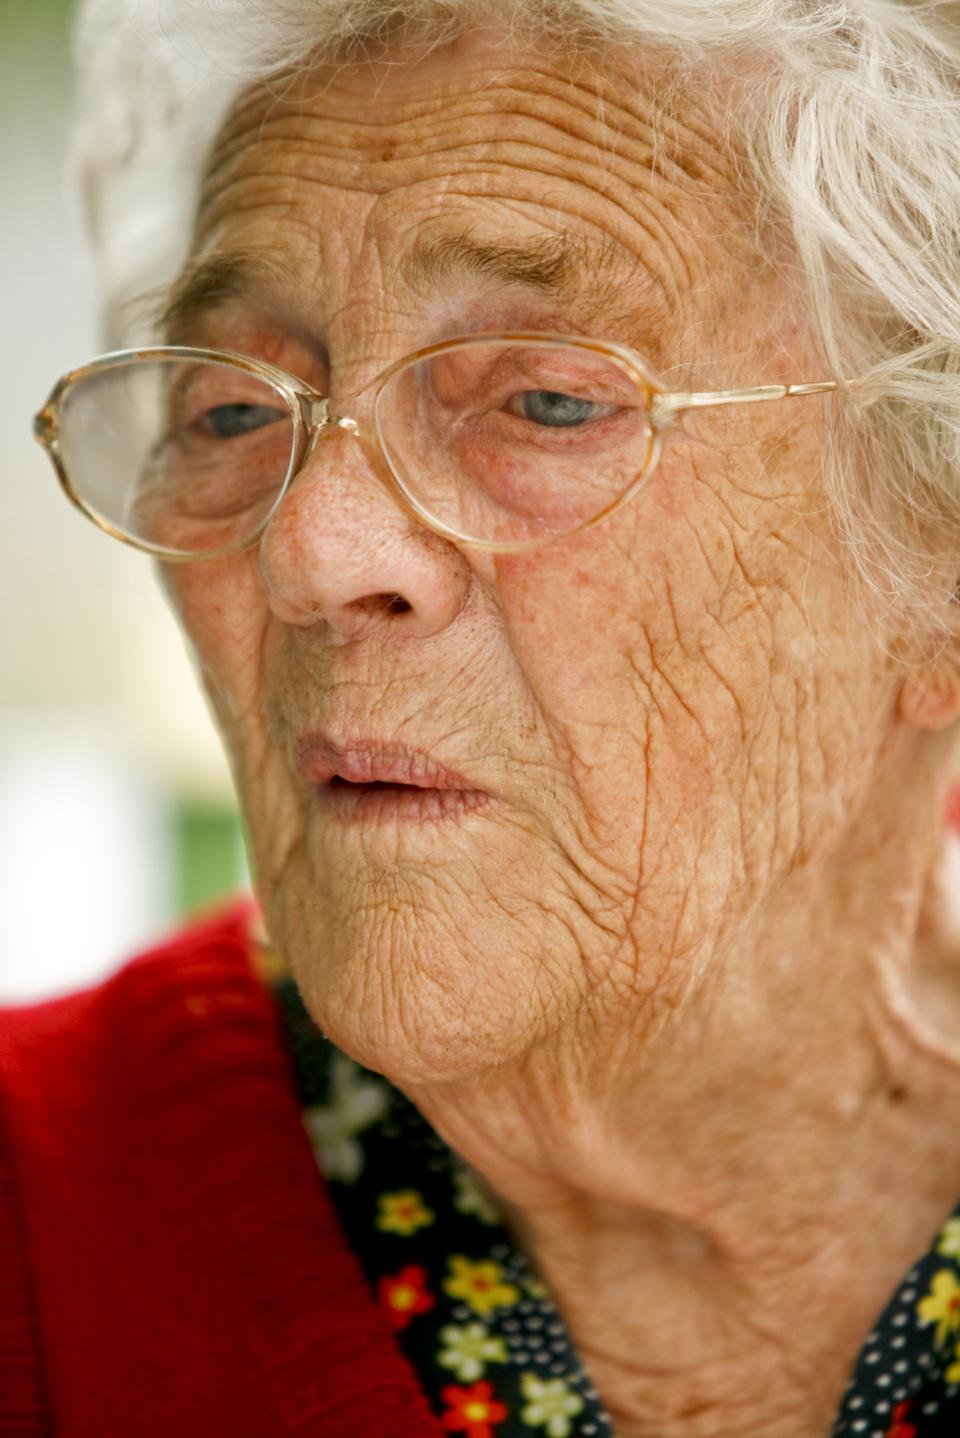 Elders isolated at home or in care facilities